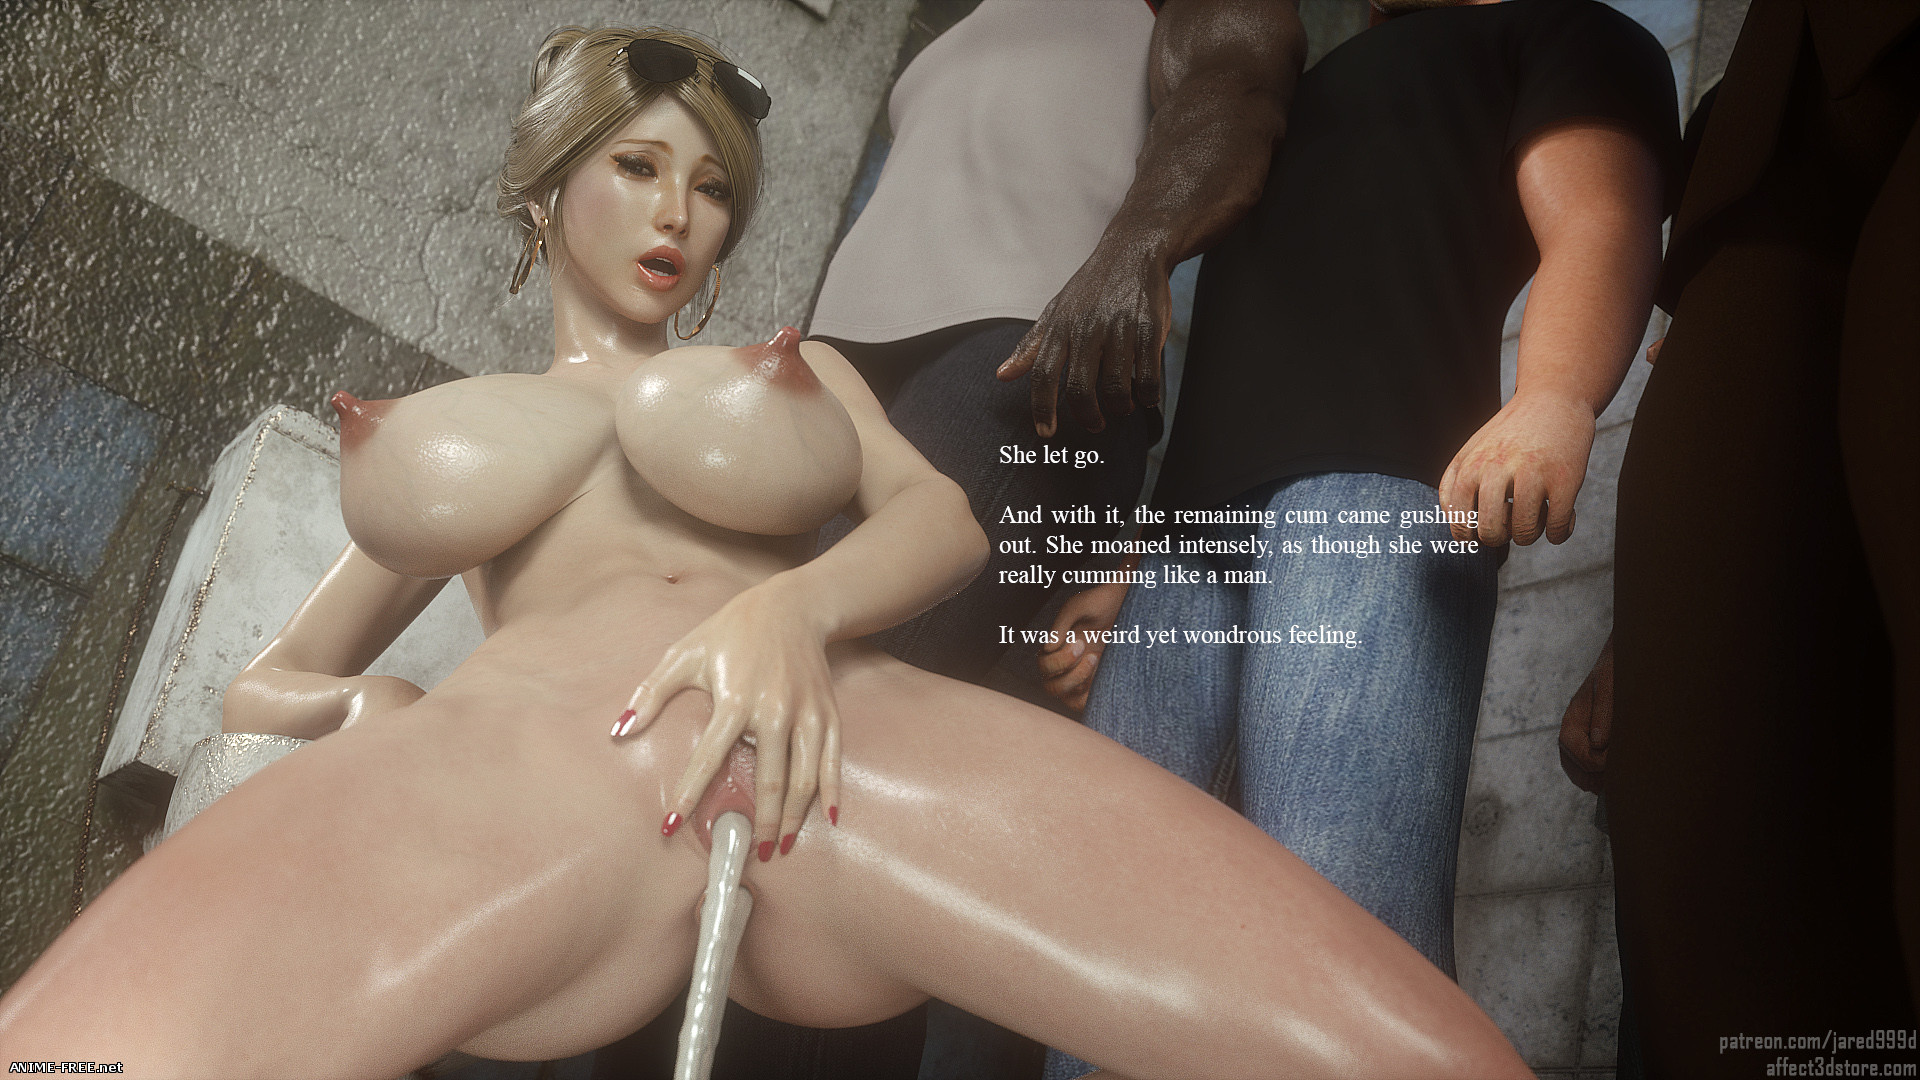 Wild Suzi's Uncontrollable Lust Part 3 [3DCG] [Uncen] [ENG] Porn Comics